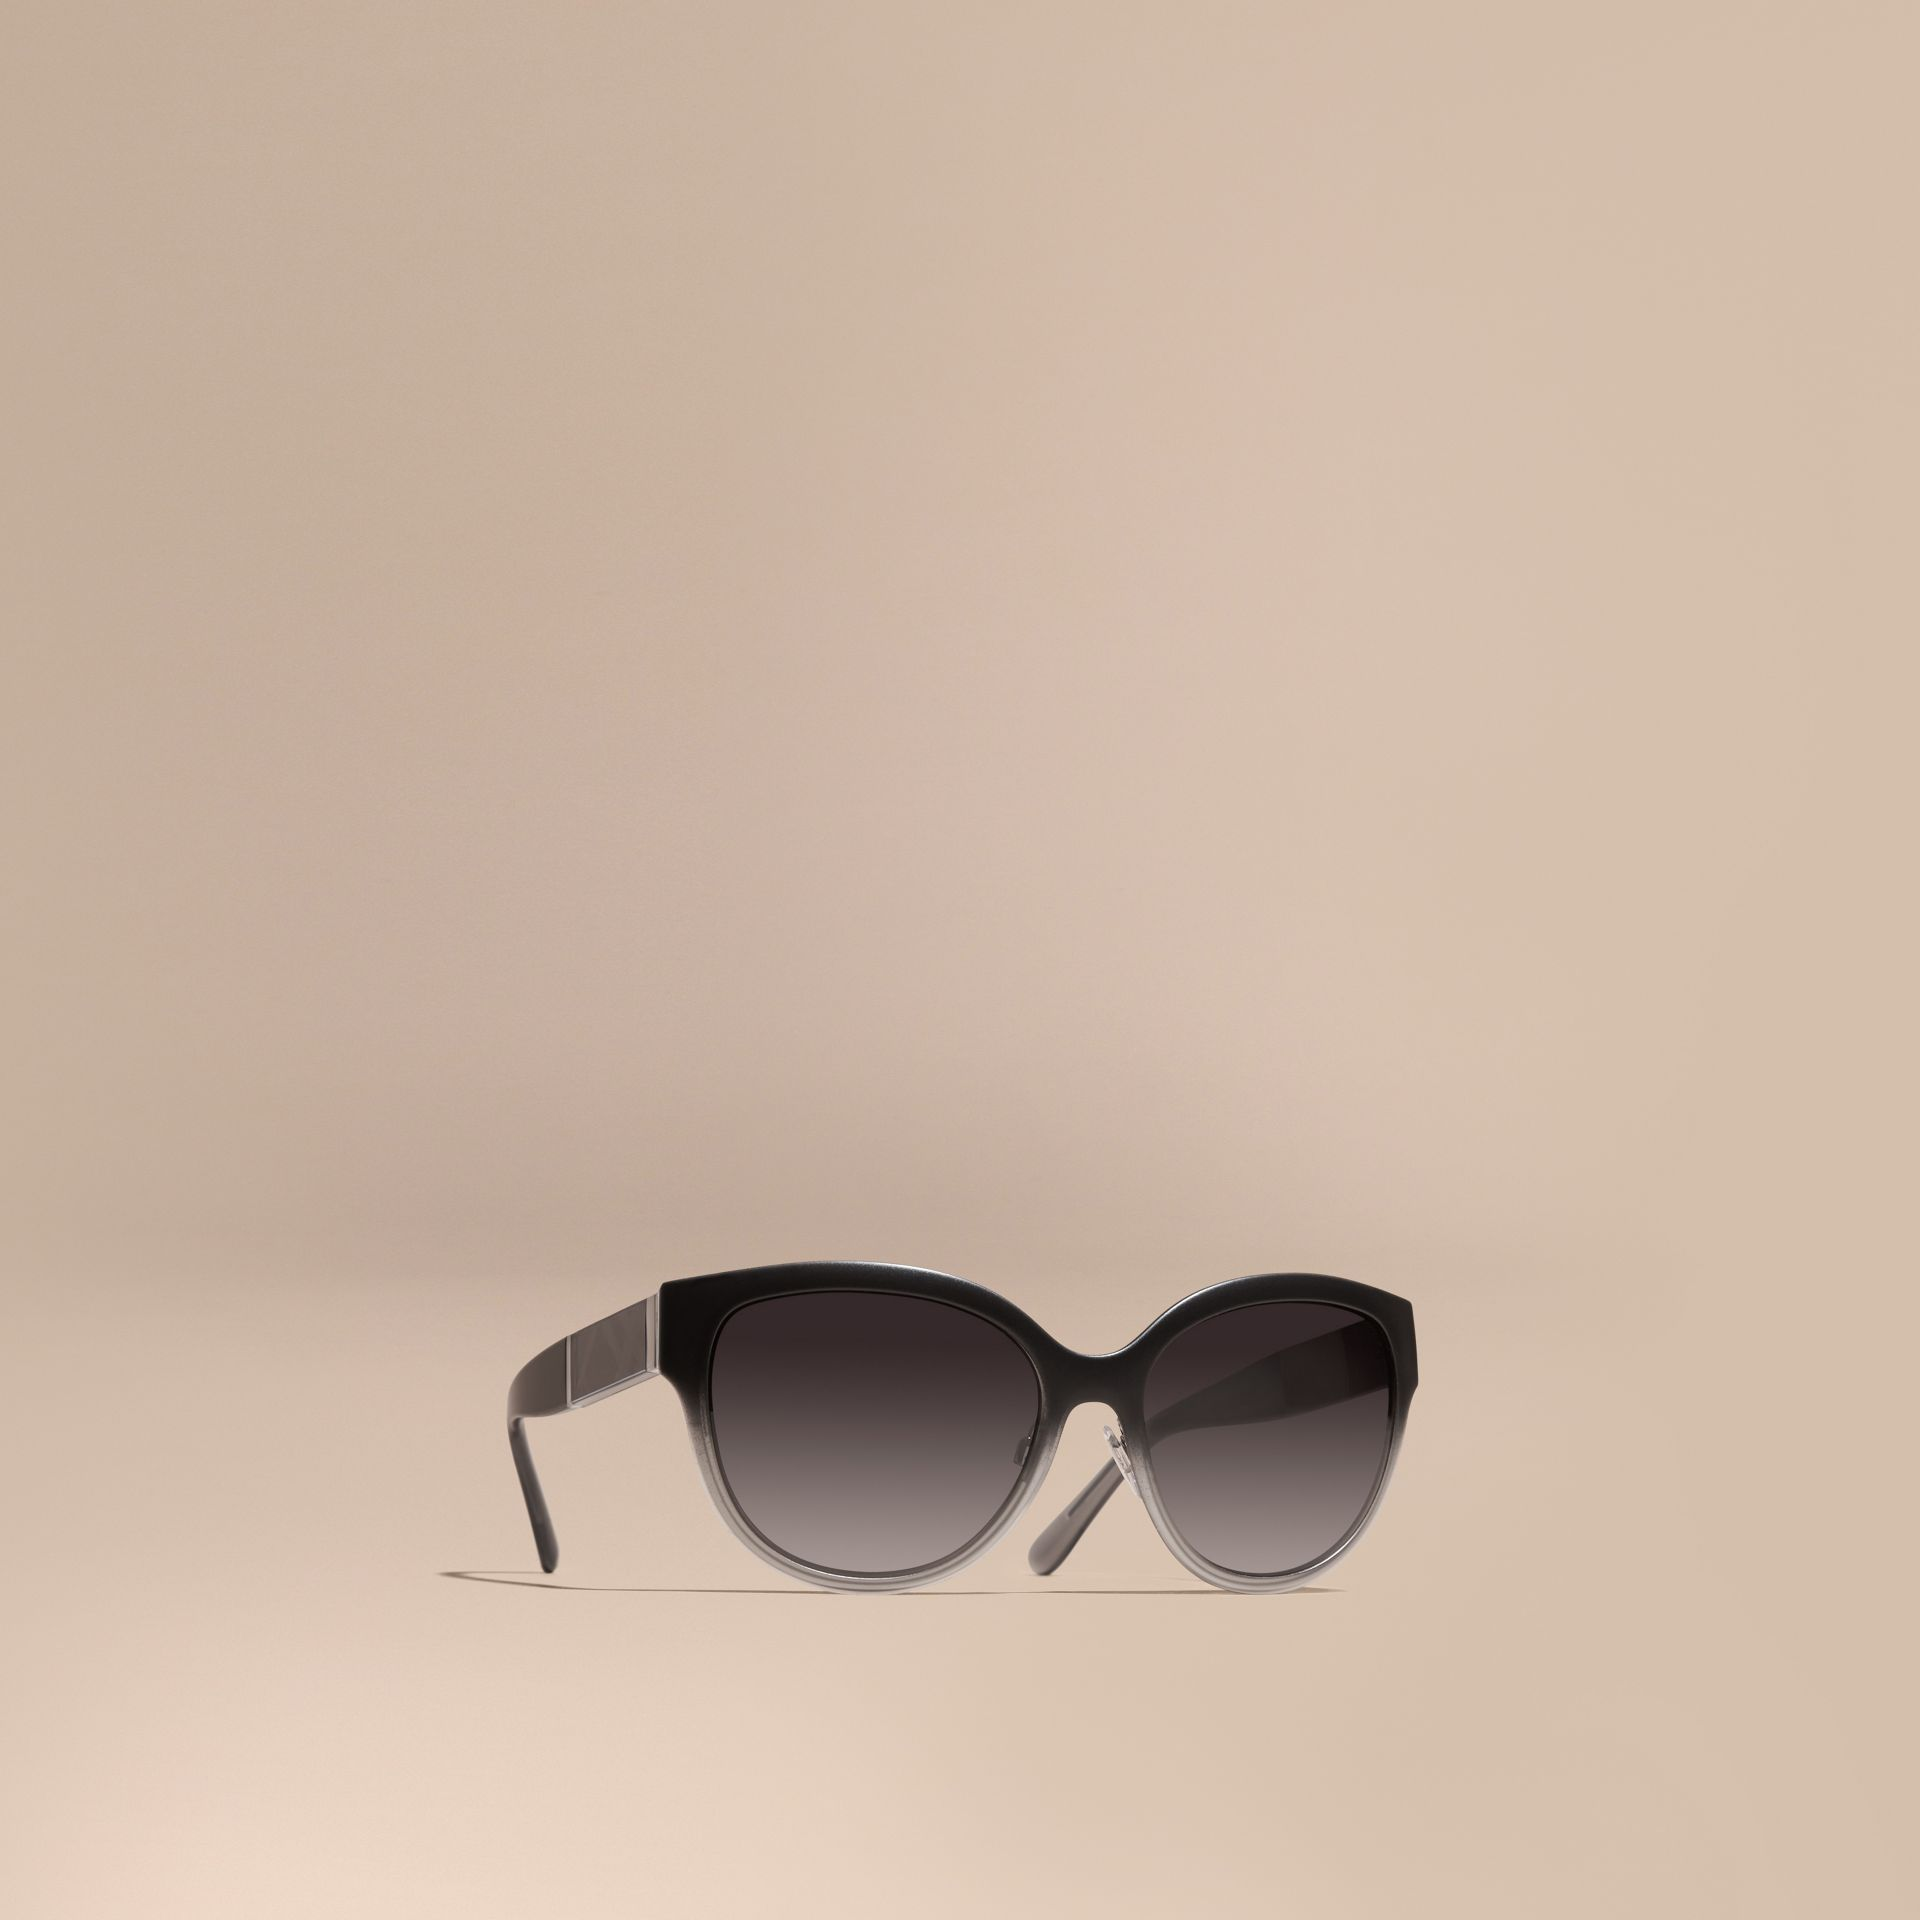 Black Check Detail Round Cat-eye Sunglasses Black - gallery image 1